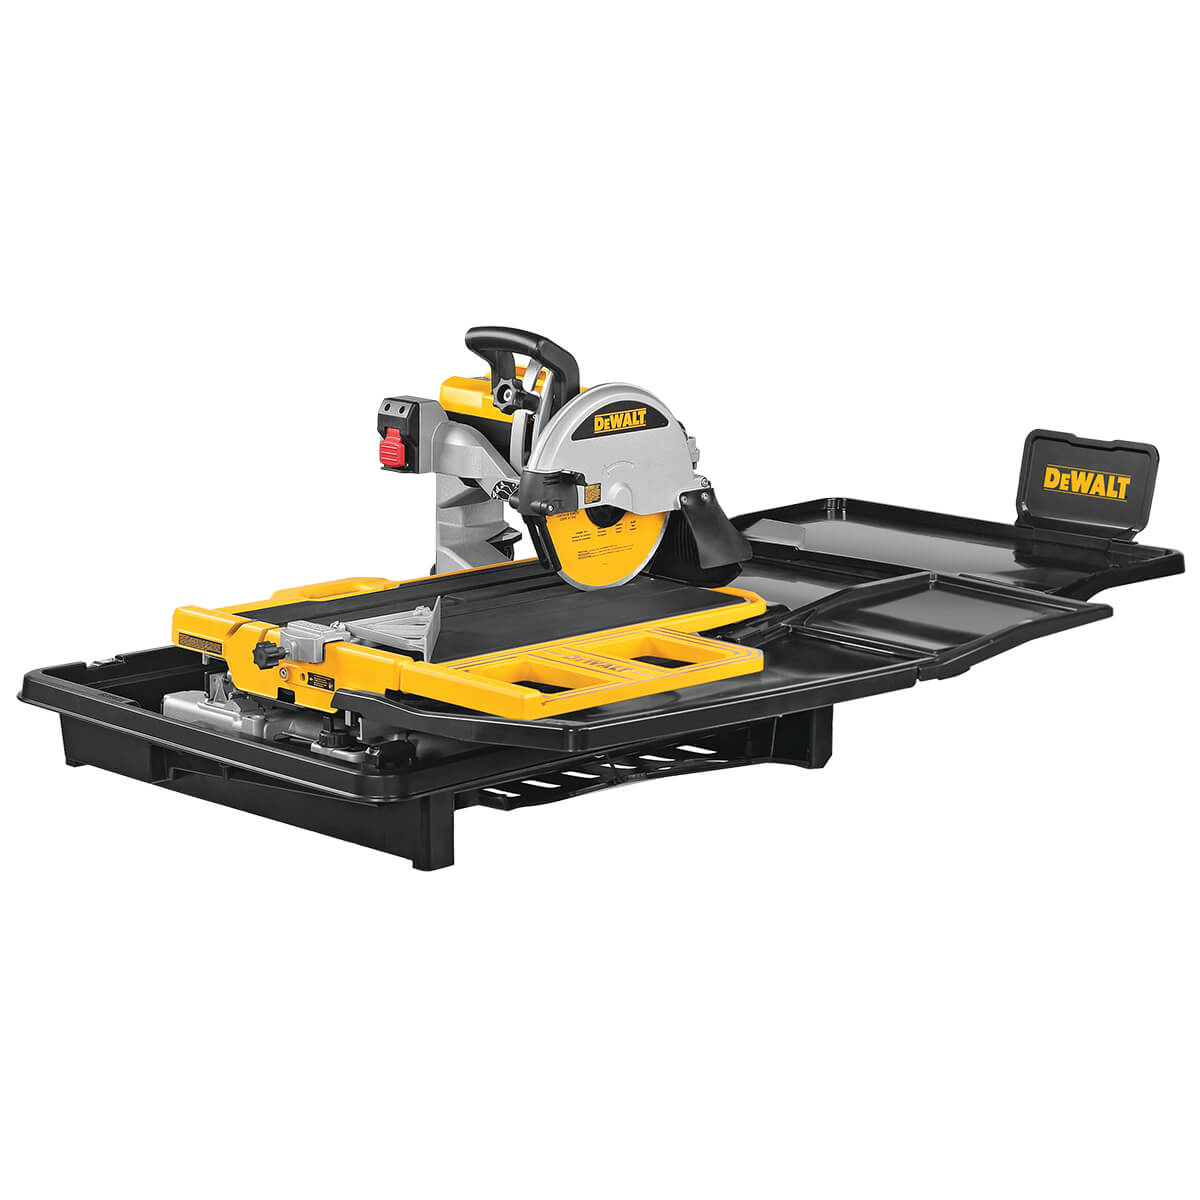 Dewalt 36000 Tile Saw